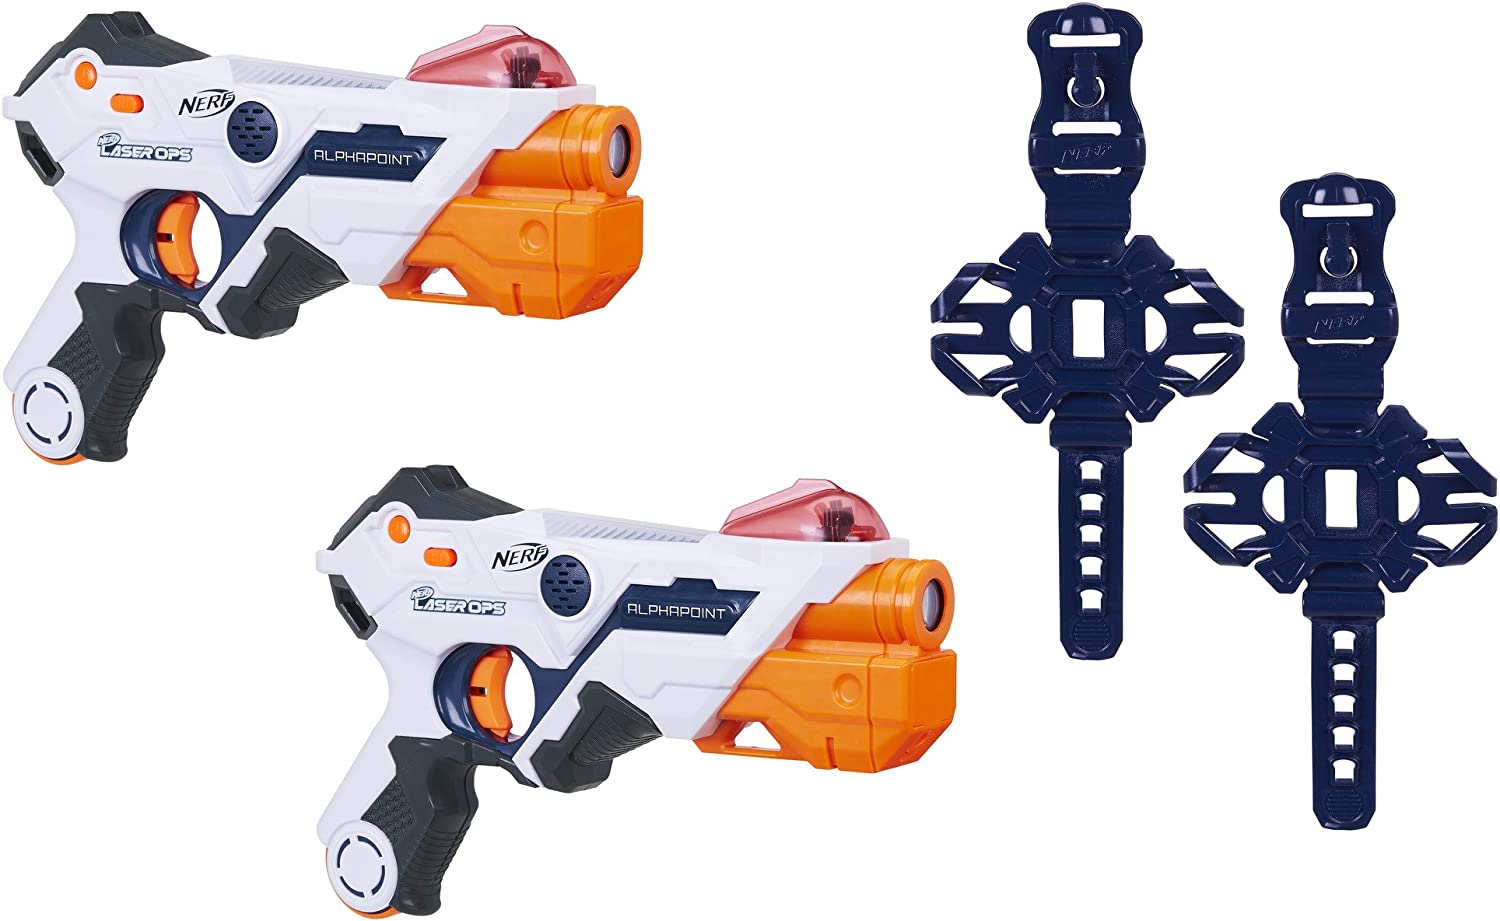 Top 9 Best Laser Tag Guns for Kids (2020 Reviews & Buying Guide) 2